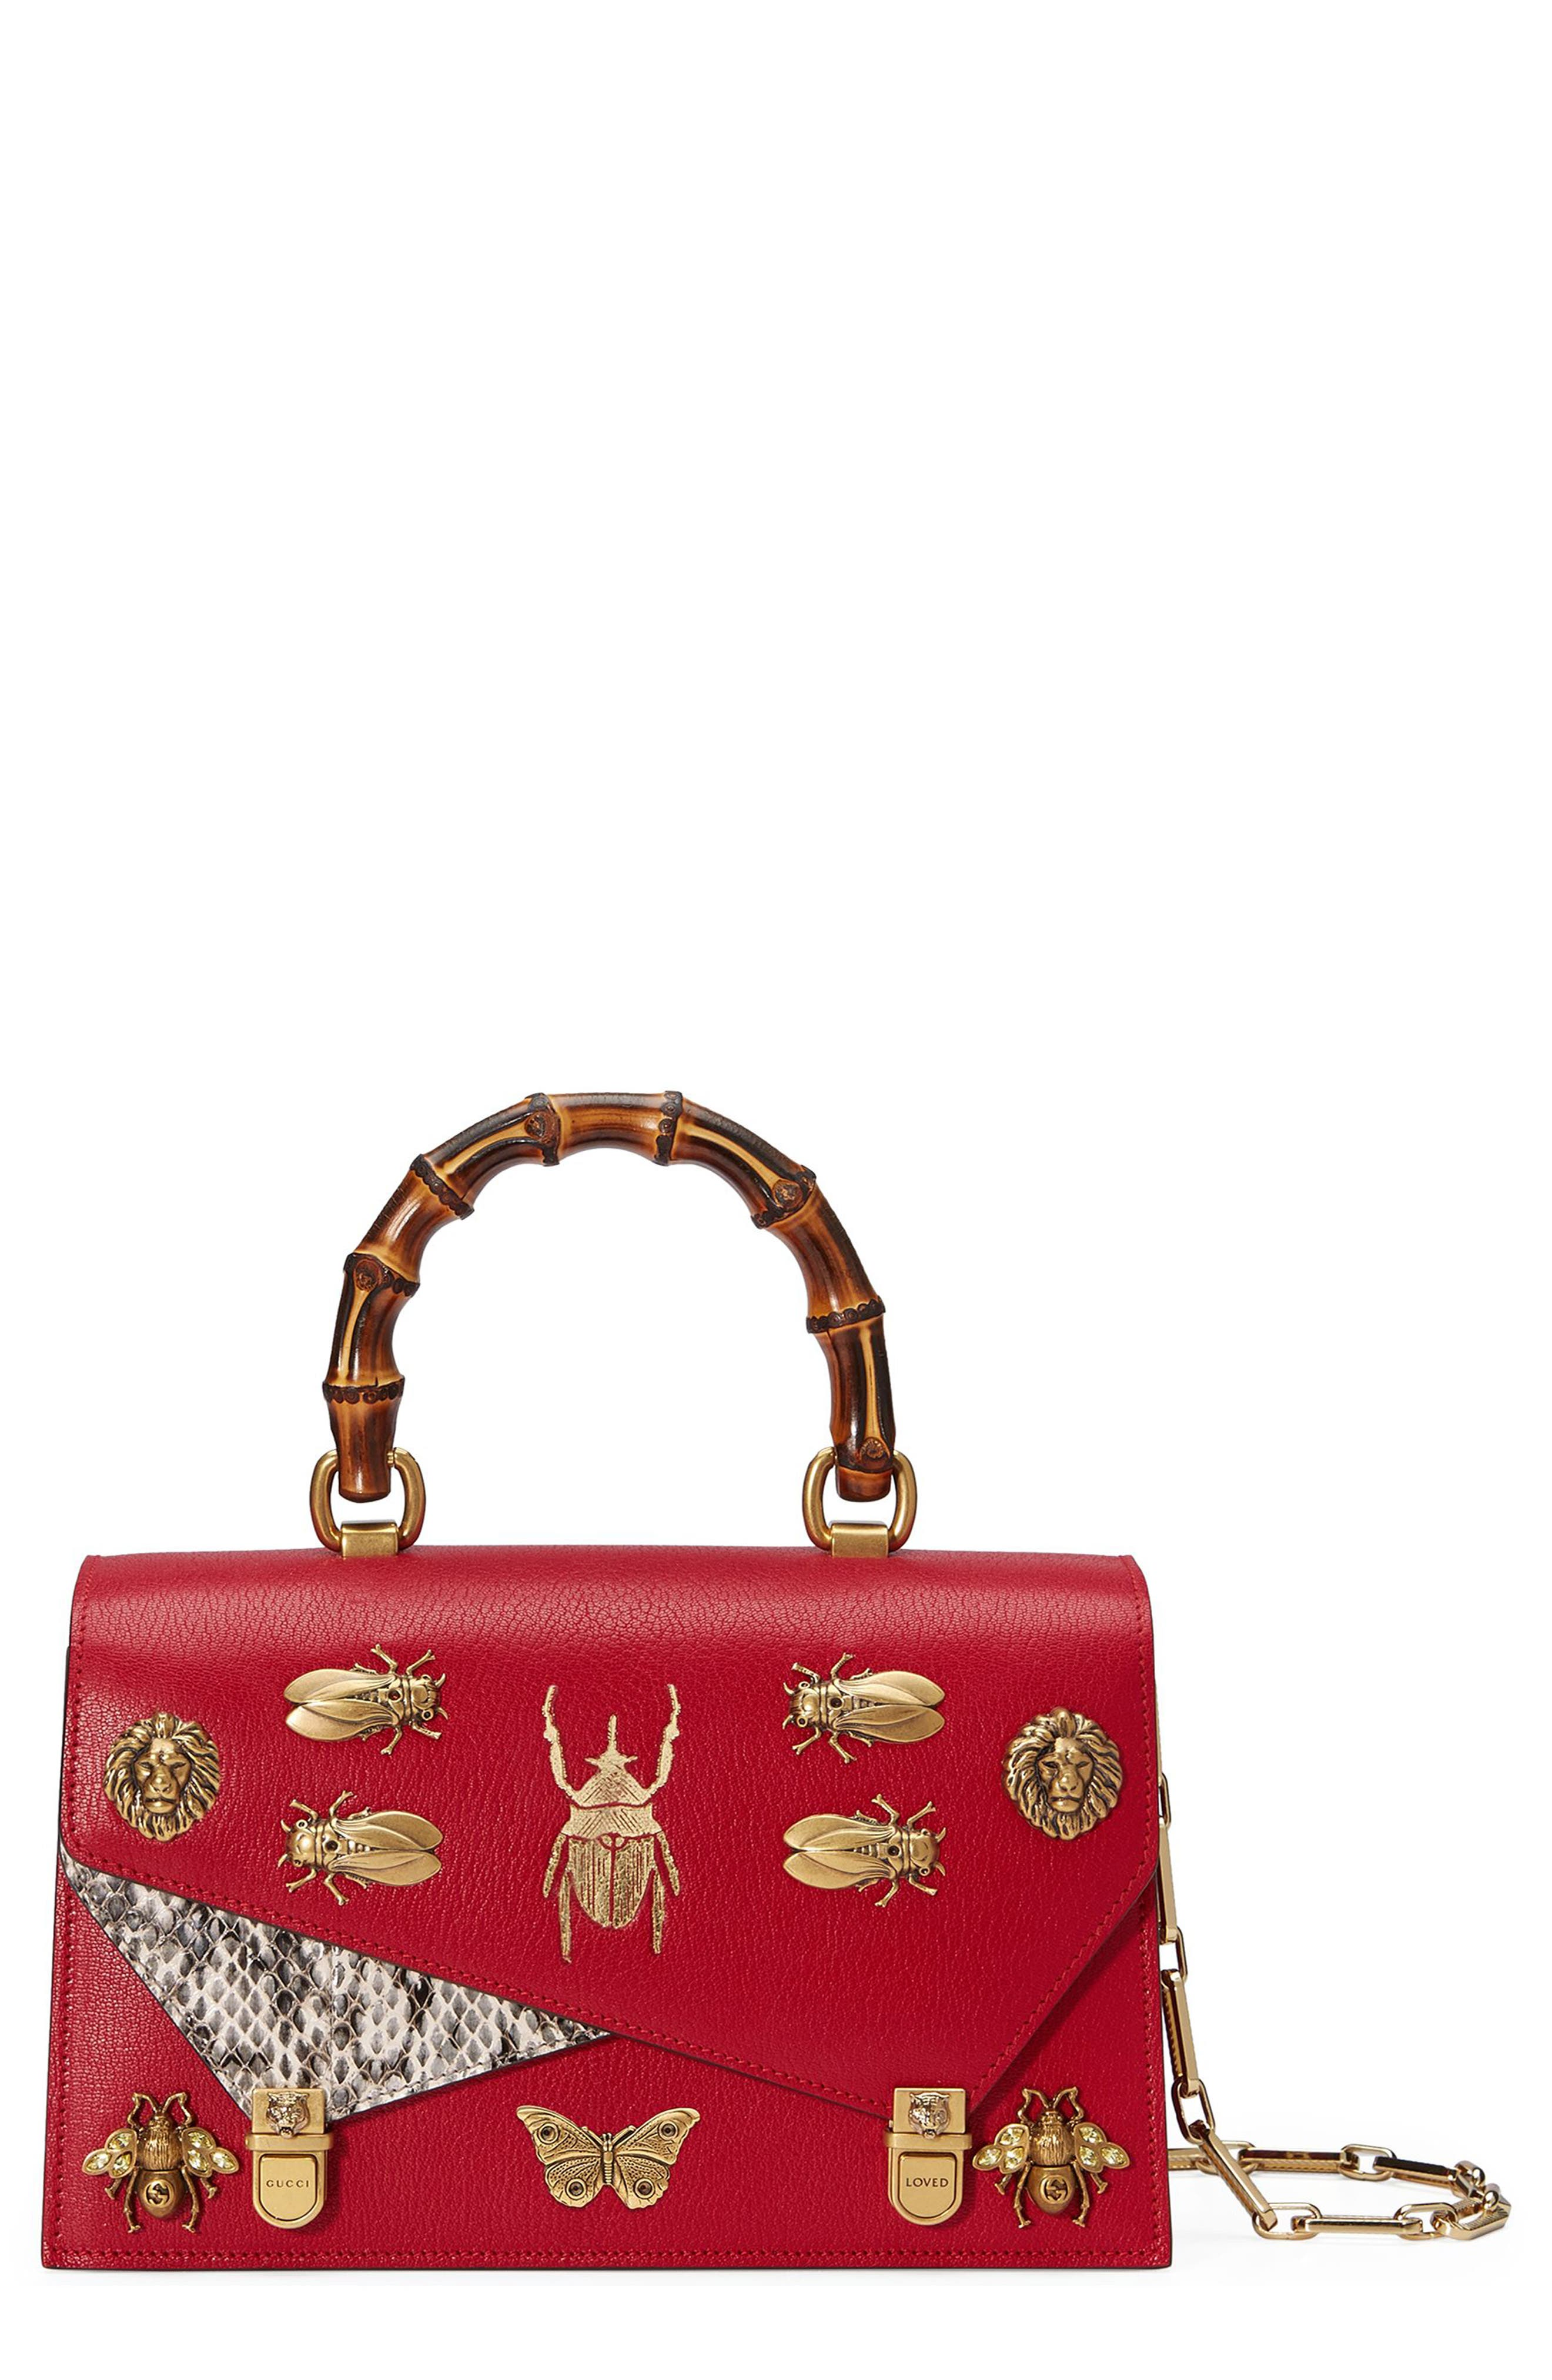 Alternate Image 1 Selected - Gucci Small Linea P Painted Insects Leather Top Handle Satchel